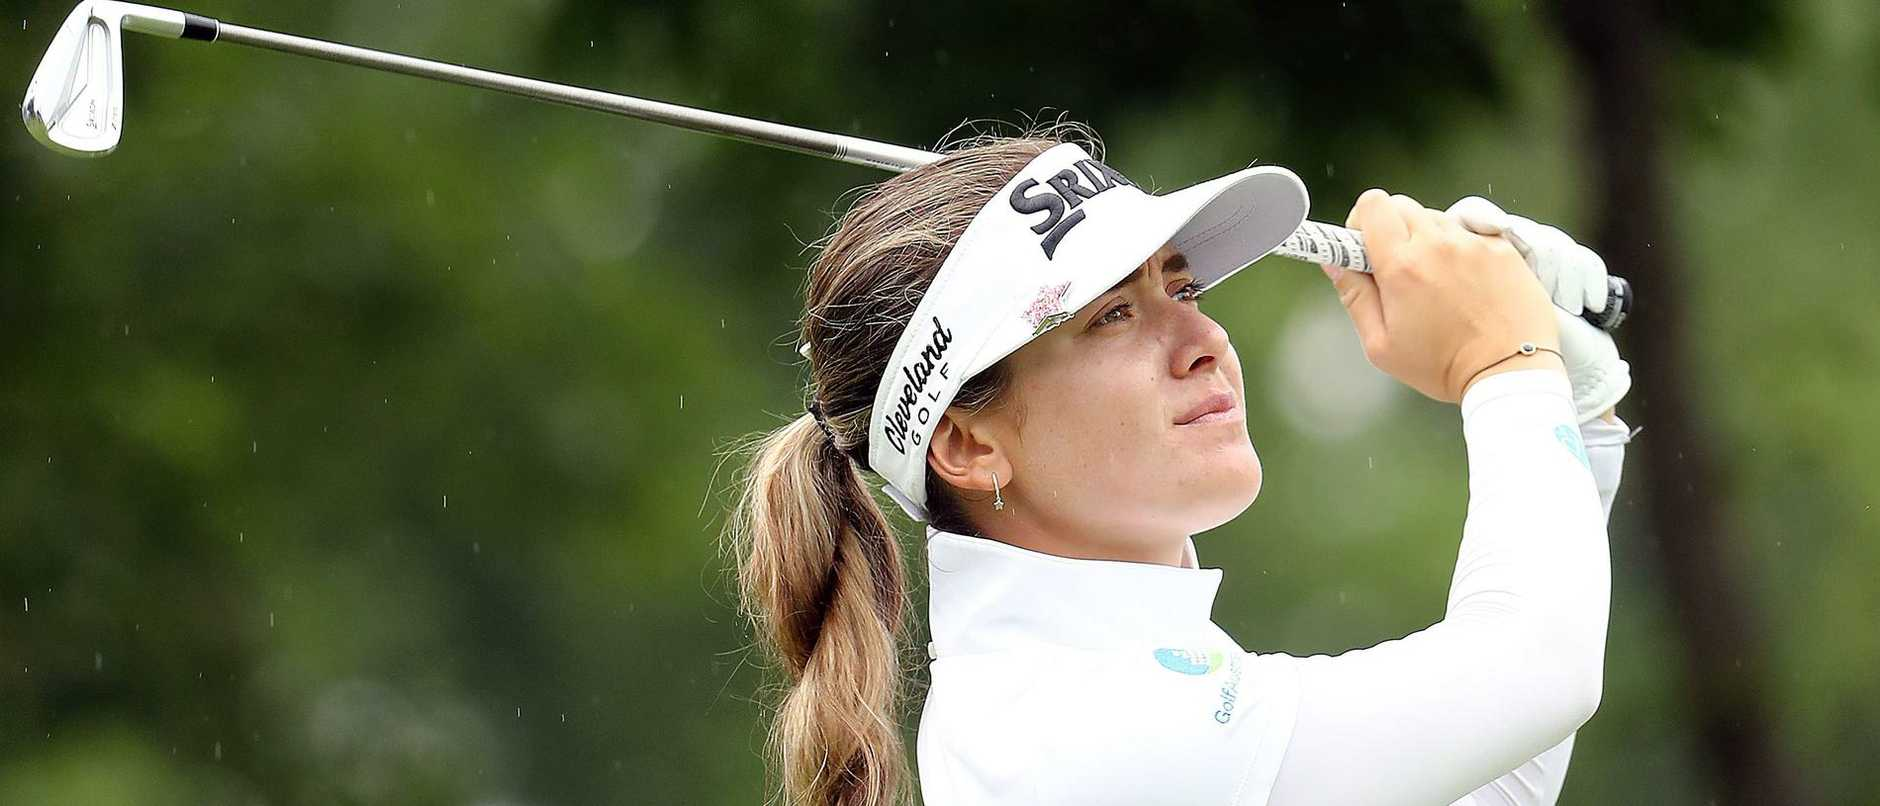 Hannah Green in action during the final round of the KPMG Women's PGA Championship.